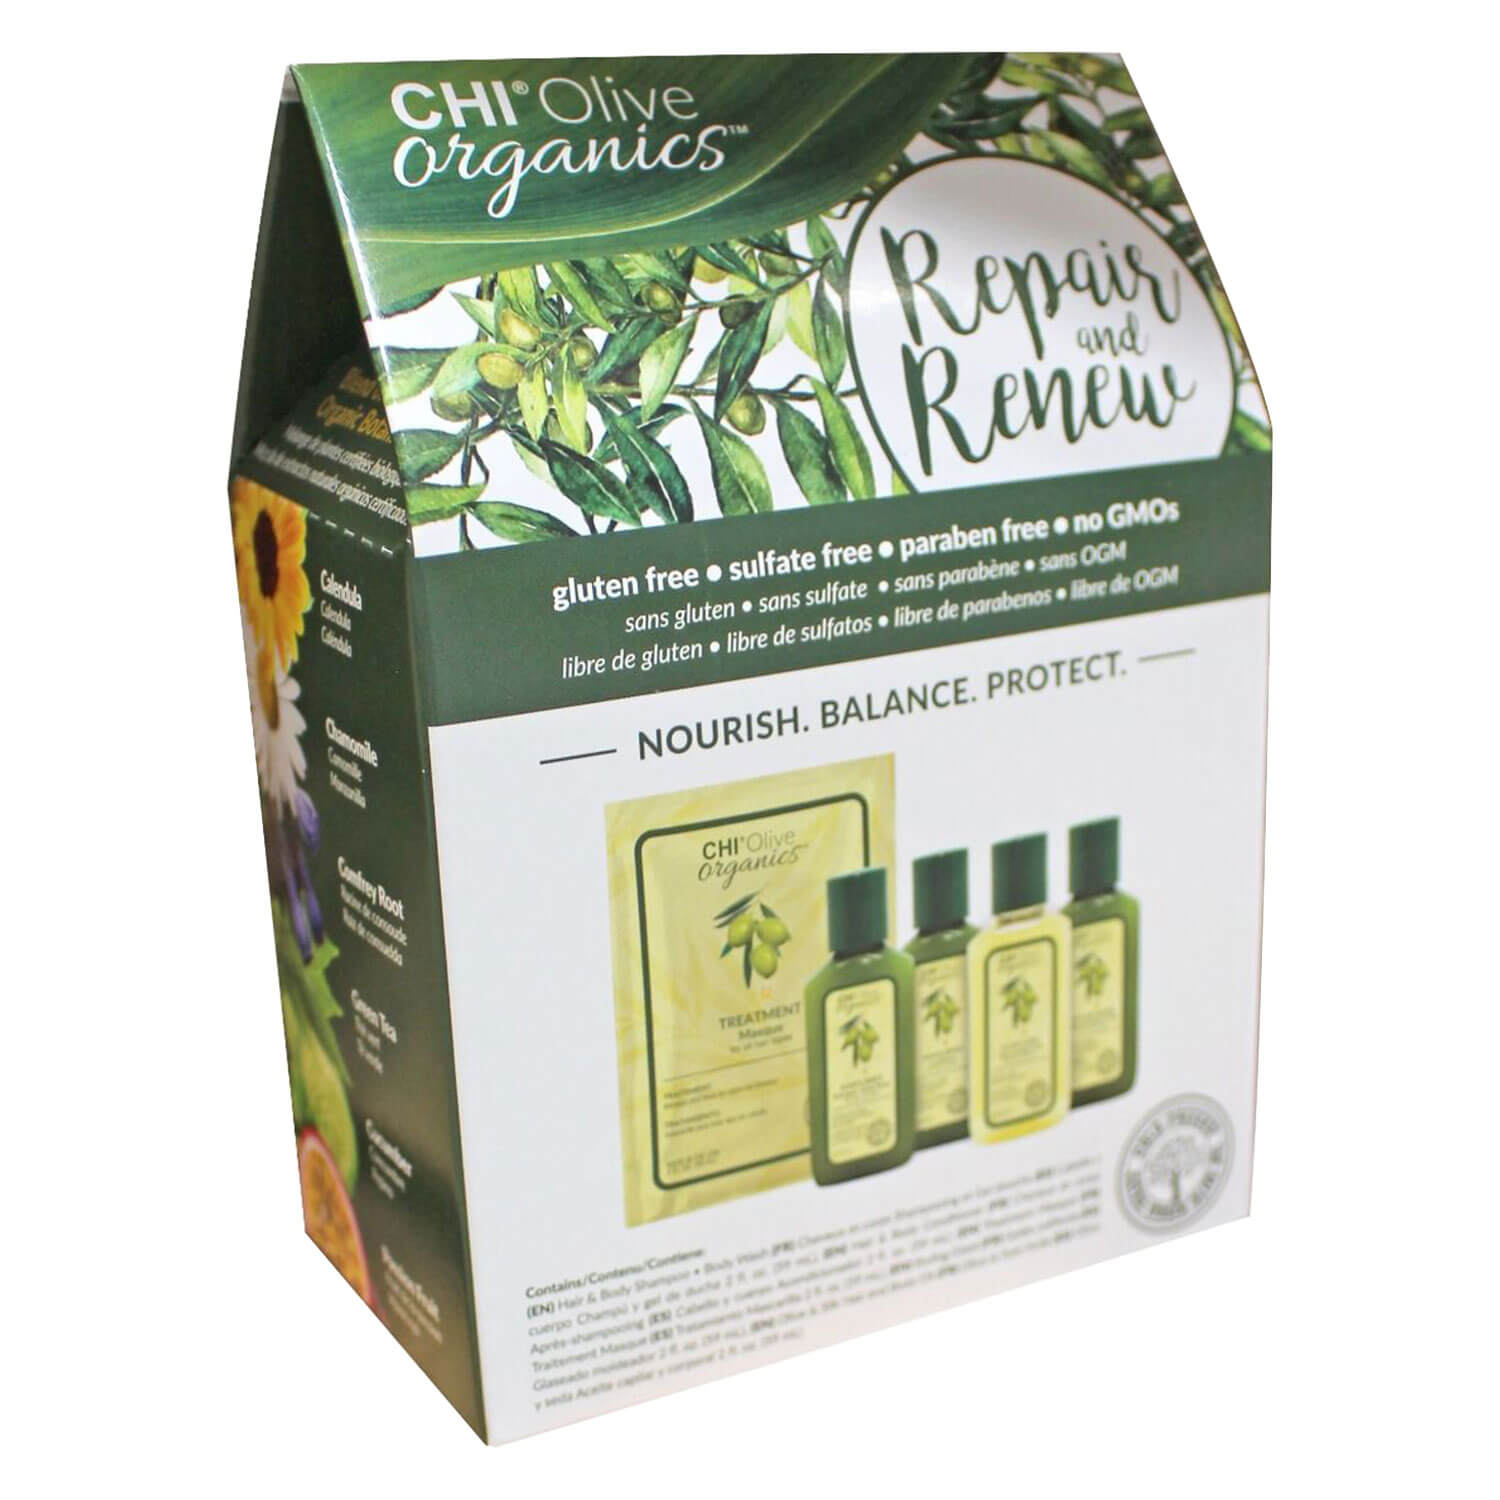 CHI Olive Organics - Repair & Renue Set